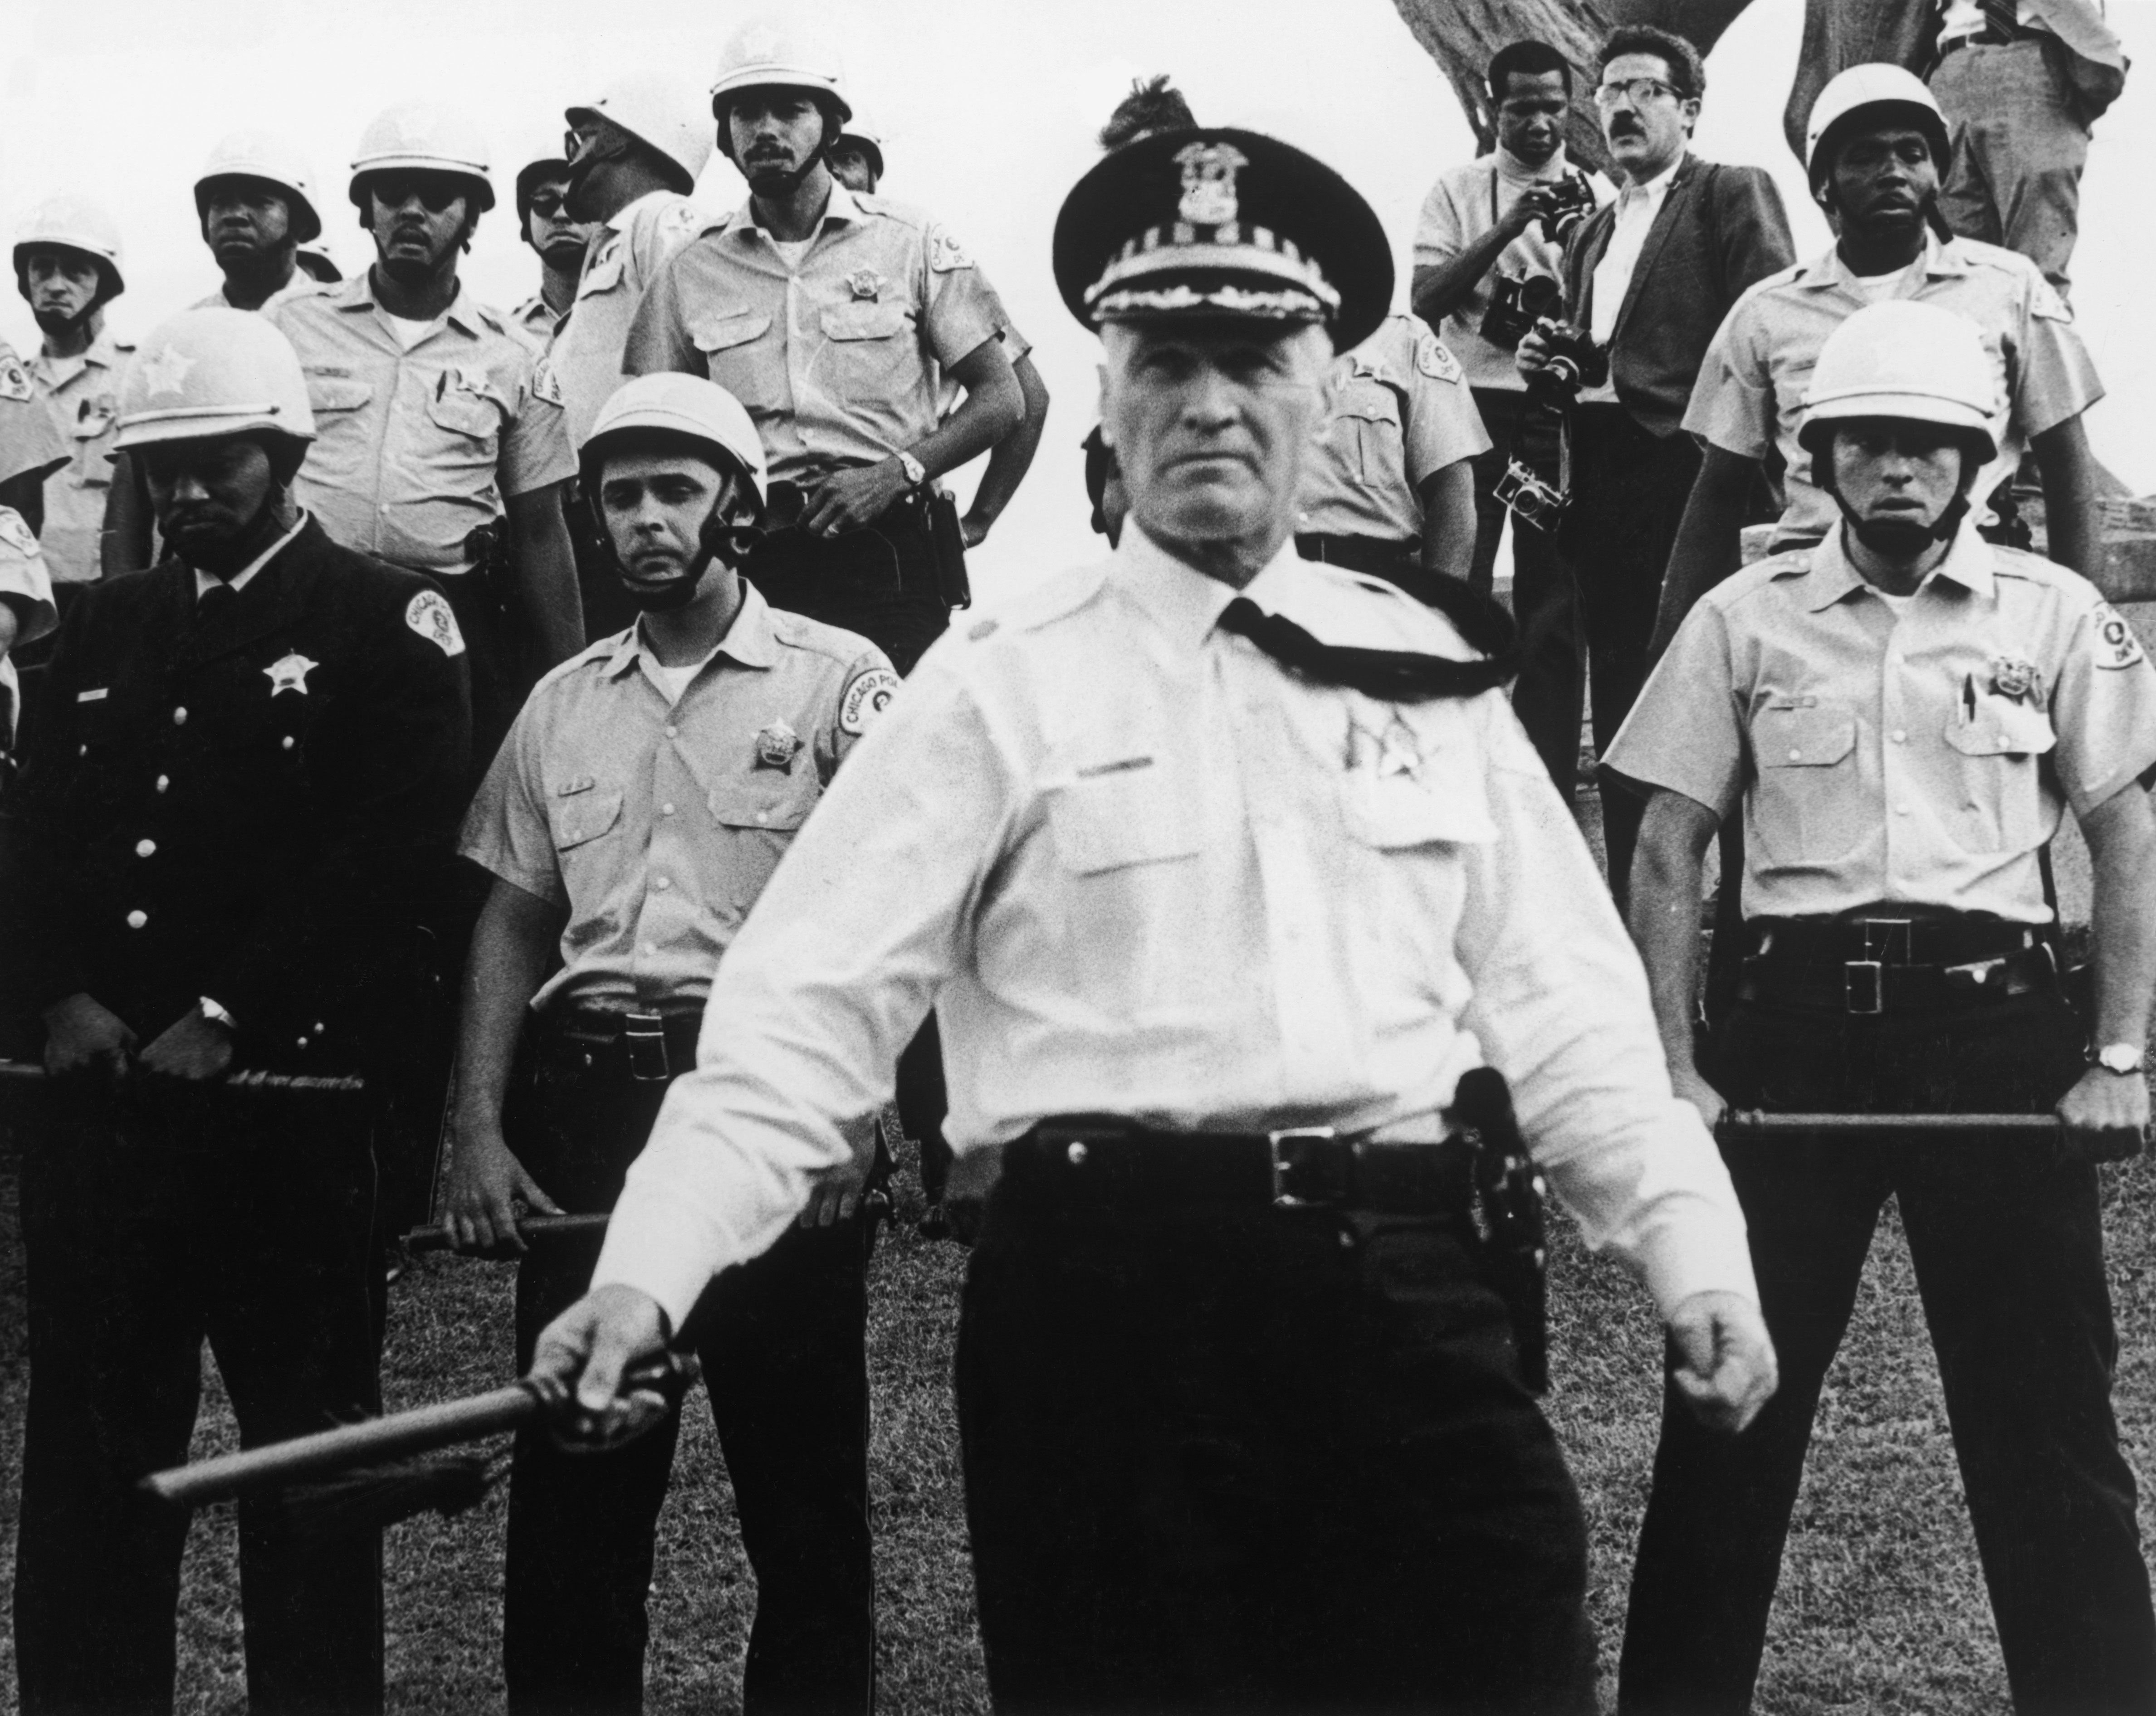 Police officers at the Democratic National Convention in Chicago, August, 1968.